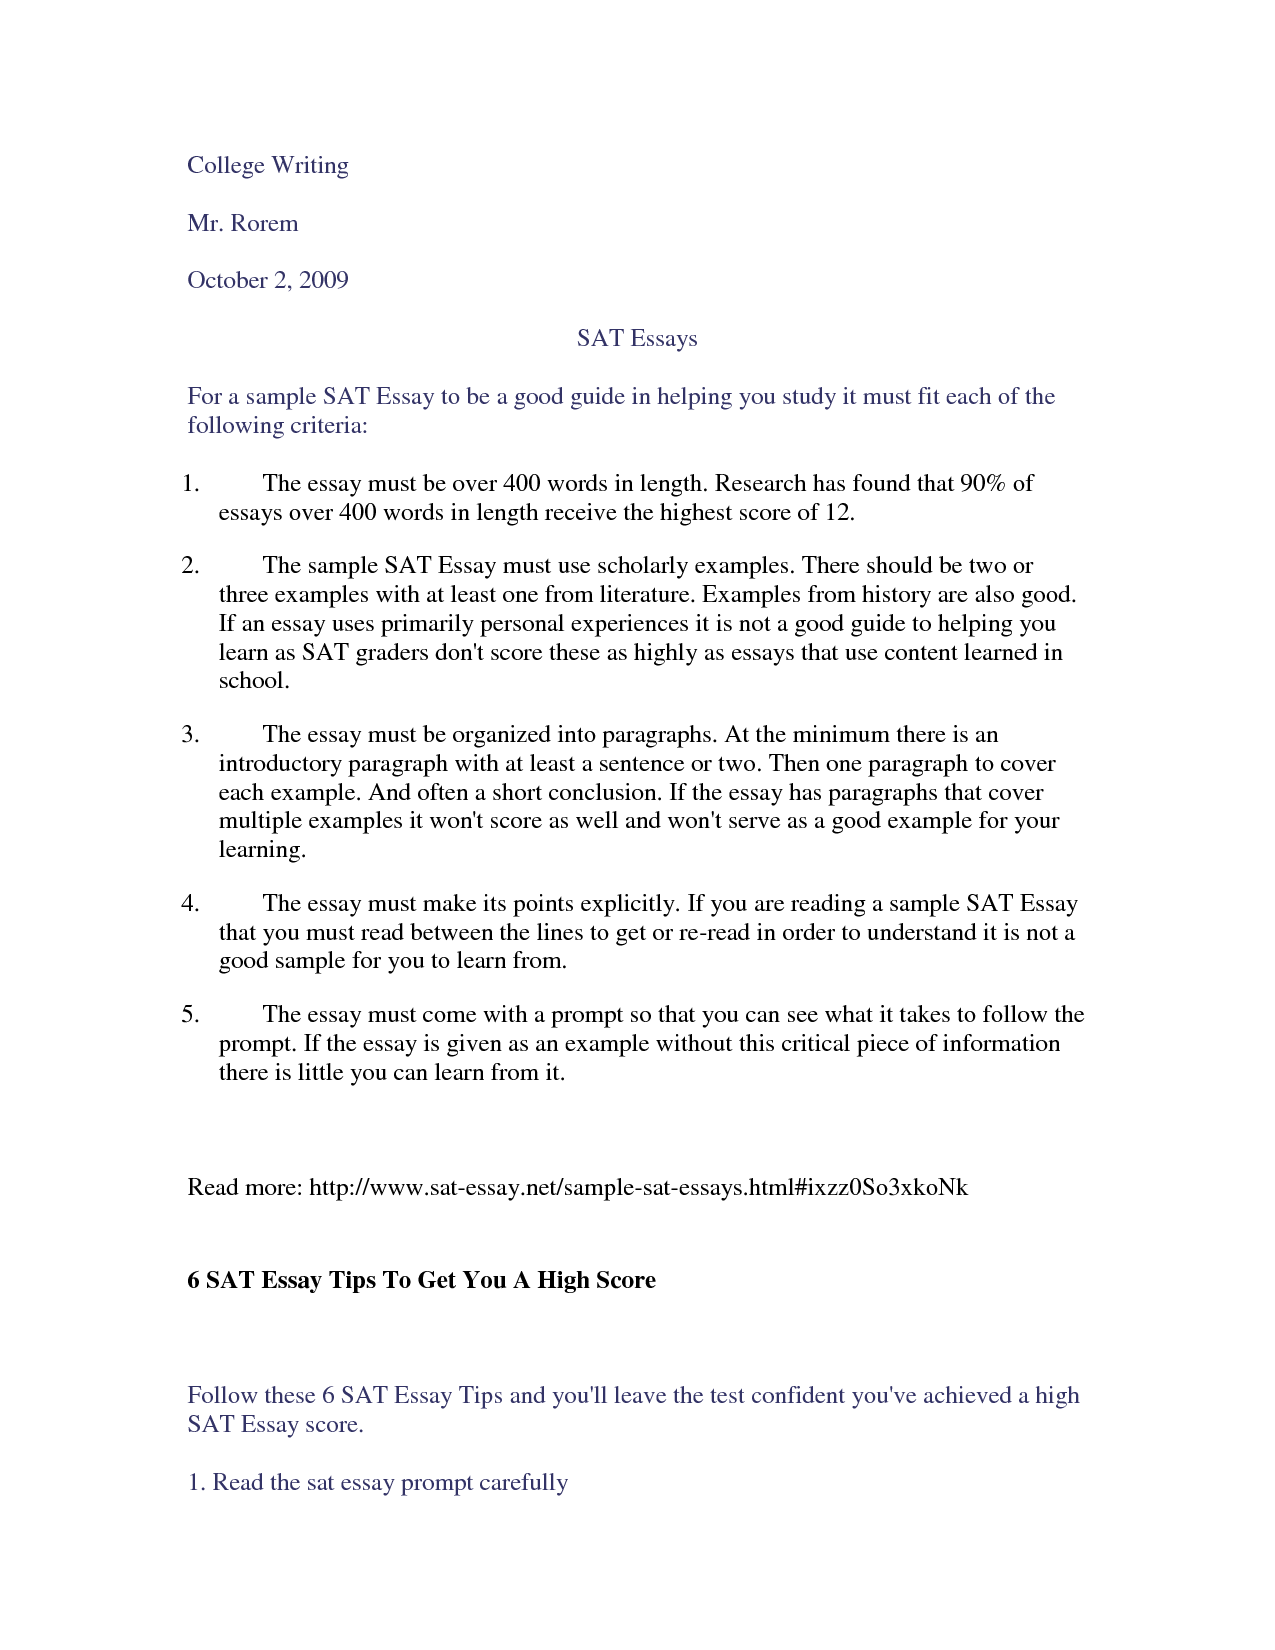 025 Essay Example How To Write Perfect Sat Make Resignation Letter Good Conclusion Kjk4f Introduction Intro Really Breathtaking Format New Template Pdf 2 Paper Old Full